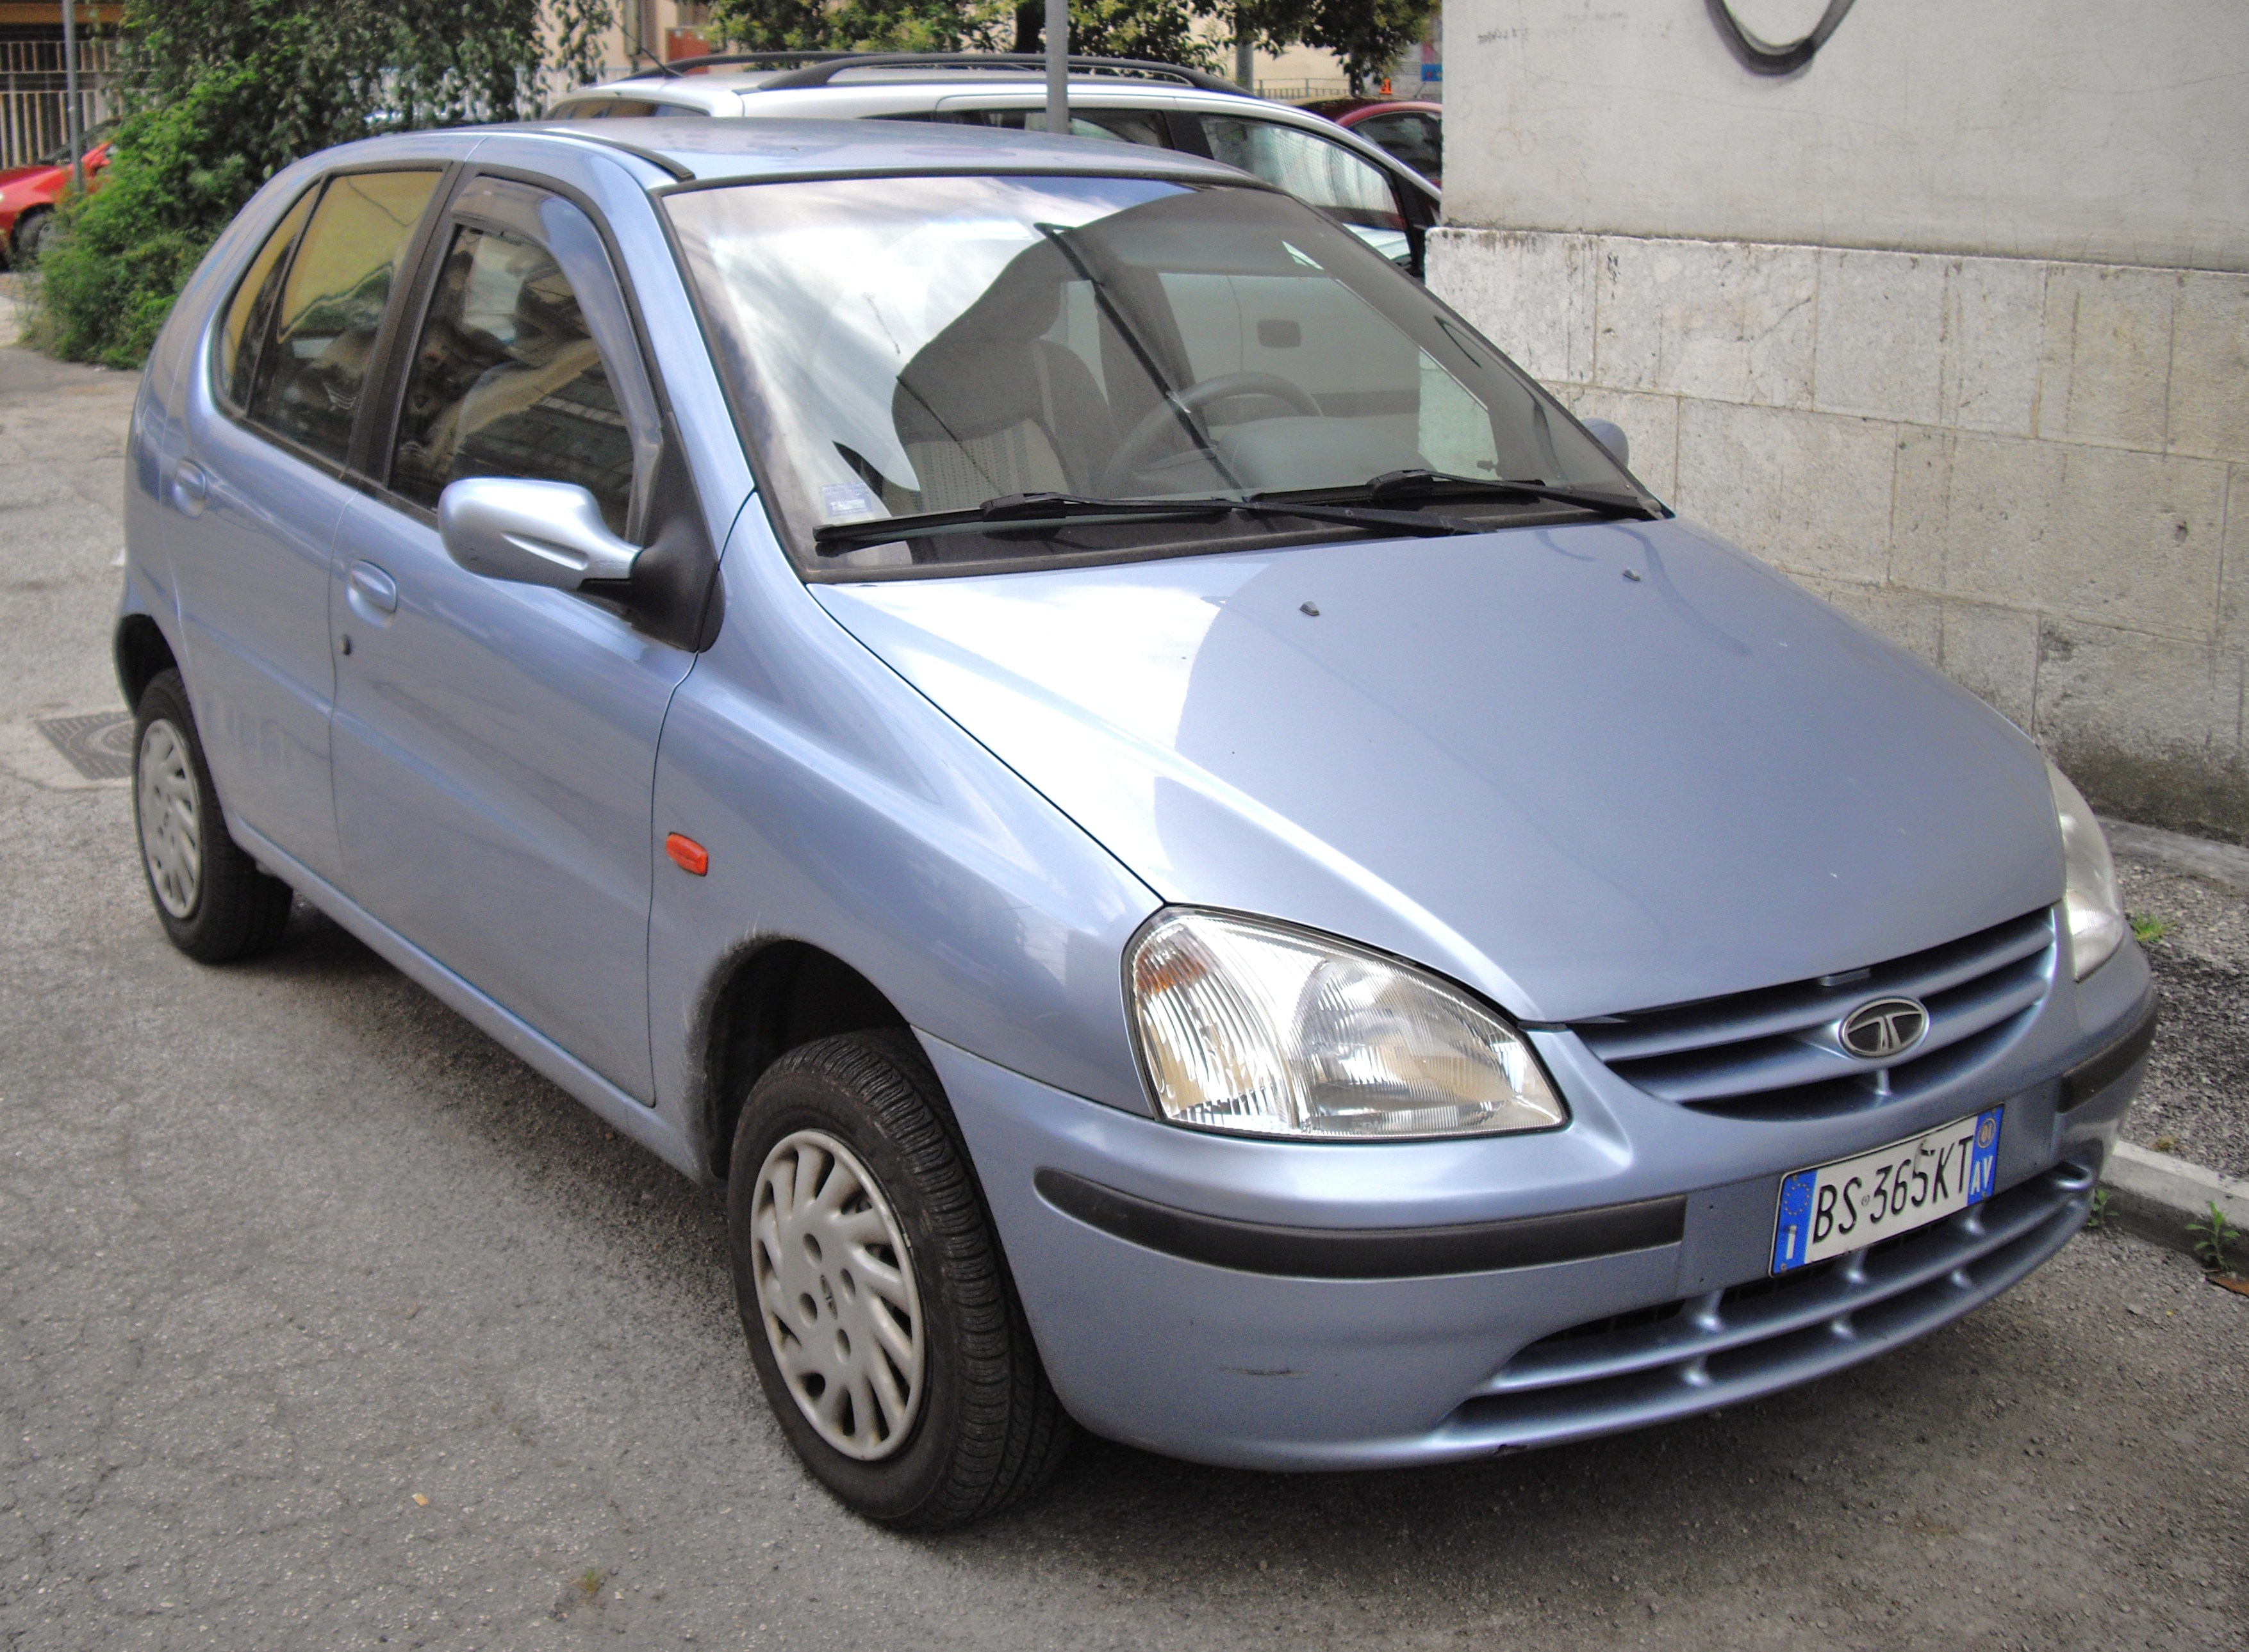 File:2000 Tata Indica blue.JPG - Wikimedia Commons